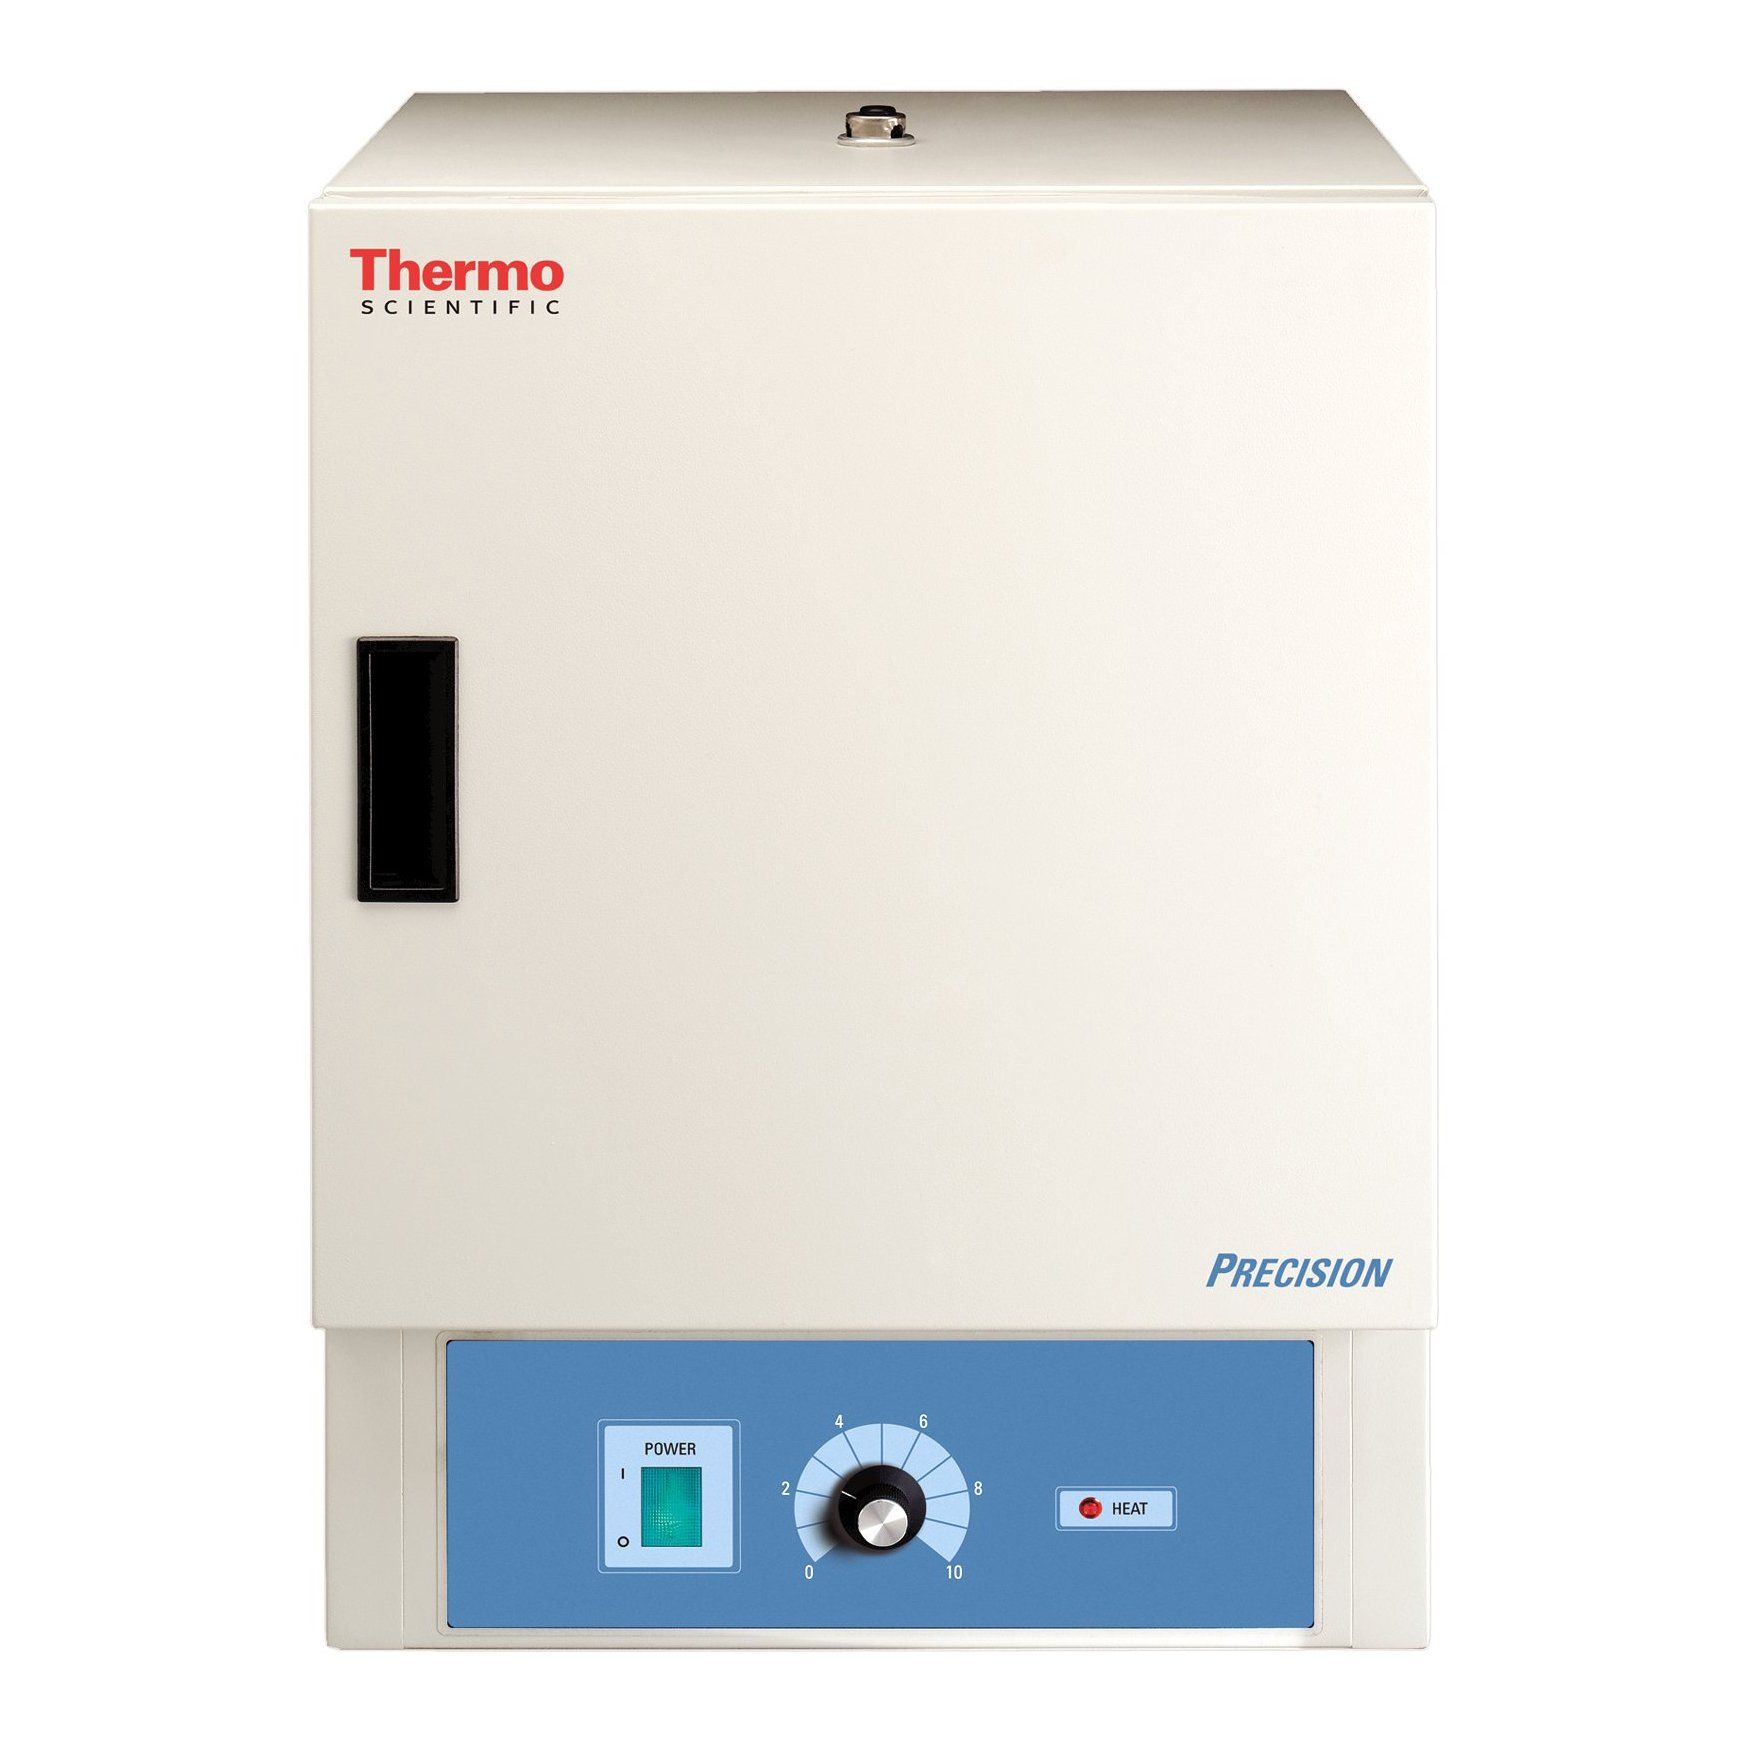 Thermo Scientific ELED PR305225G Precision Gravity Convection Compact Heating and Drying Oven with Bi-Metallic Thermostat Control and LED Display, 120V, 48L Capacity by Thermo Scientific